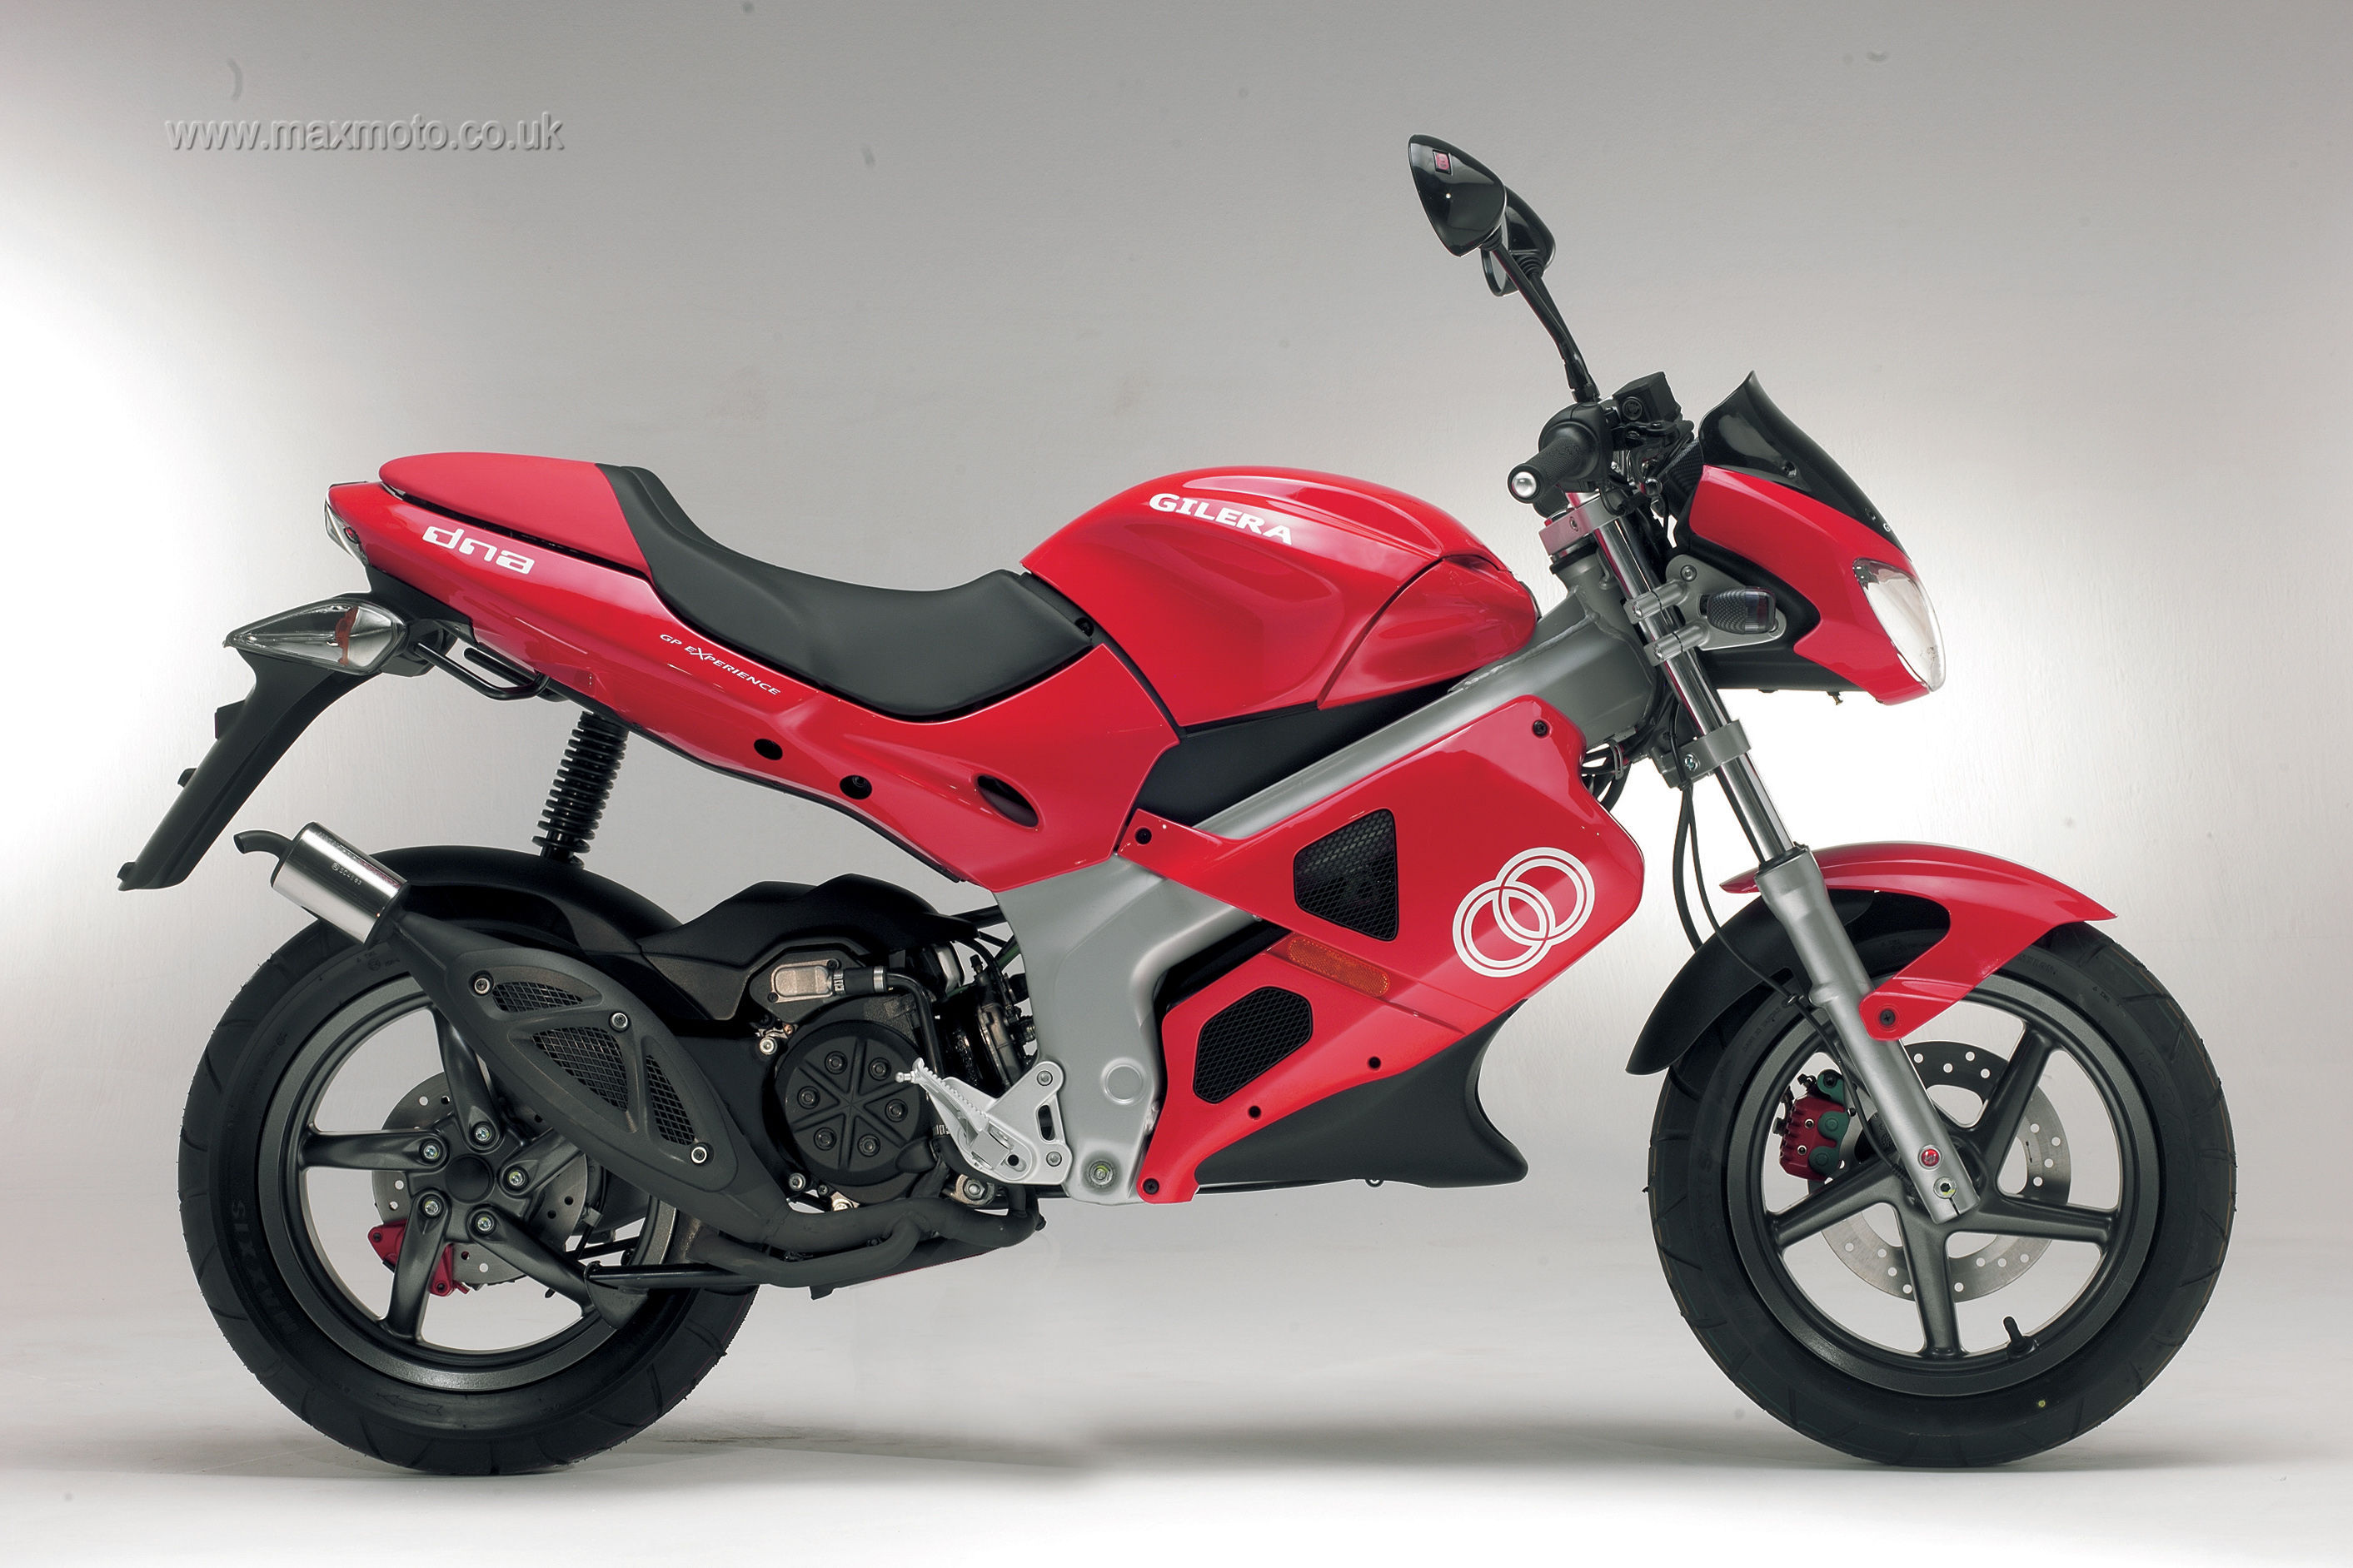 Gilera DNA 125 2004 images #73639